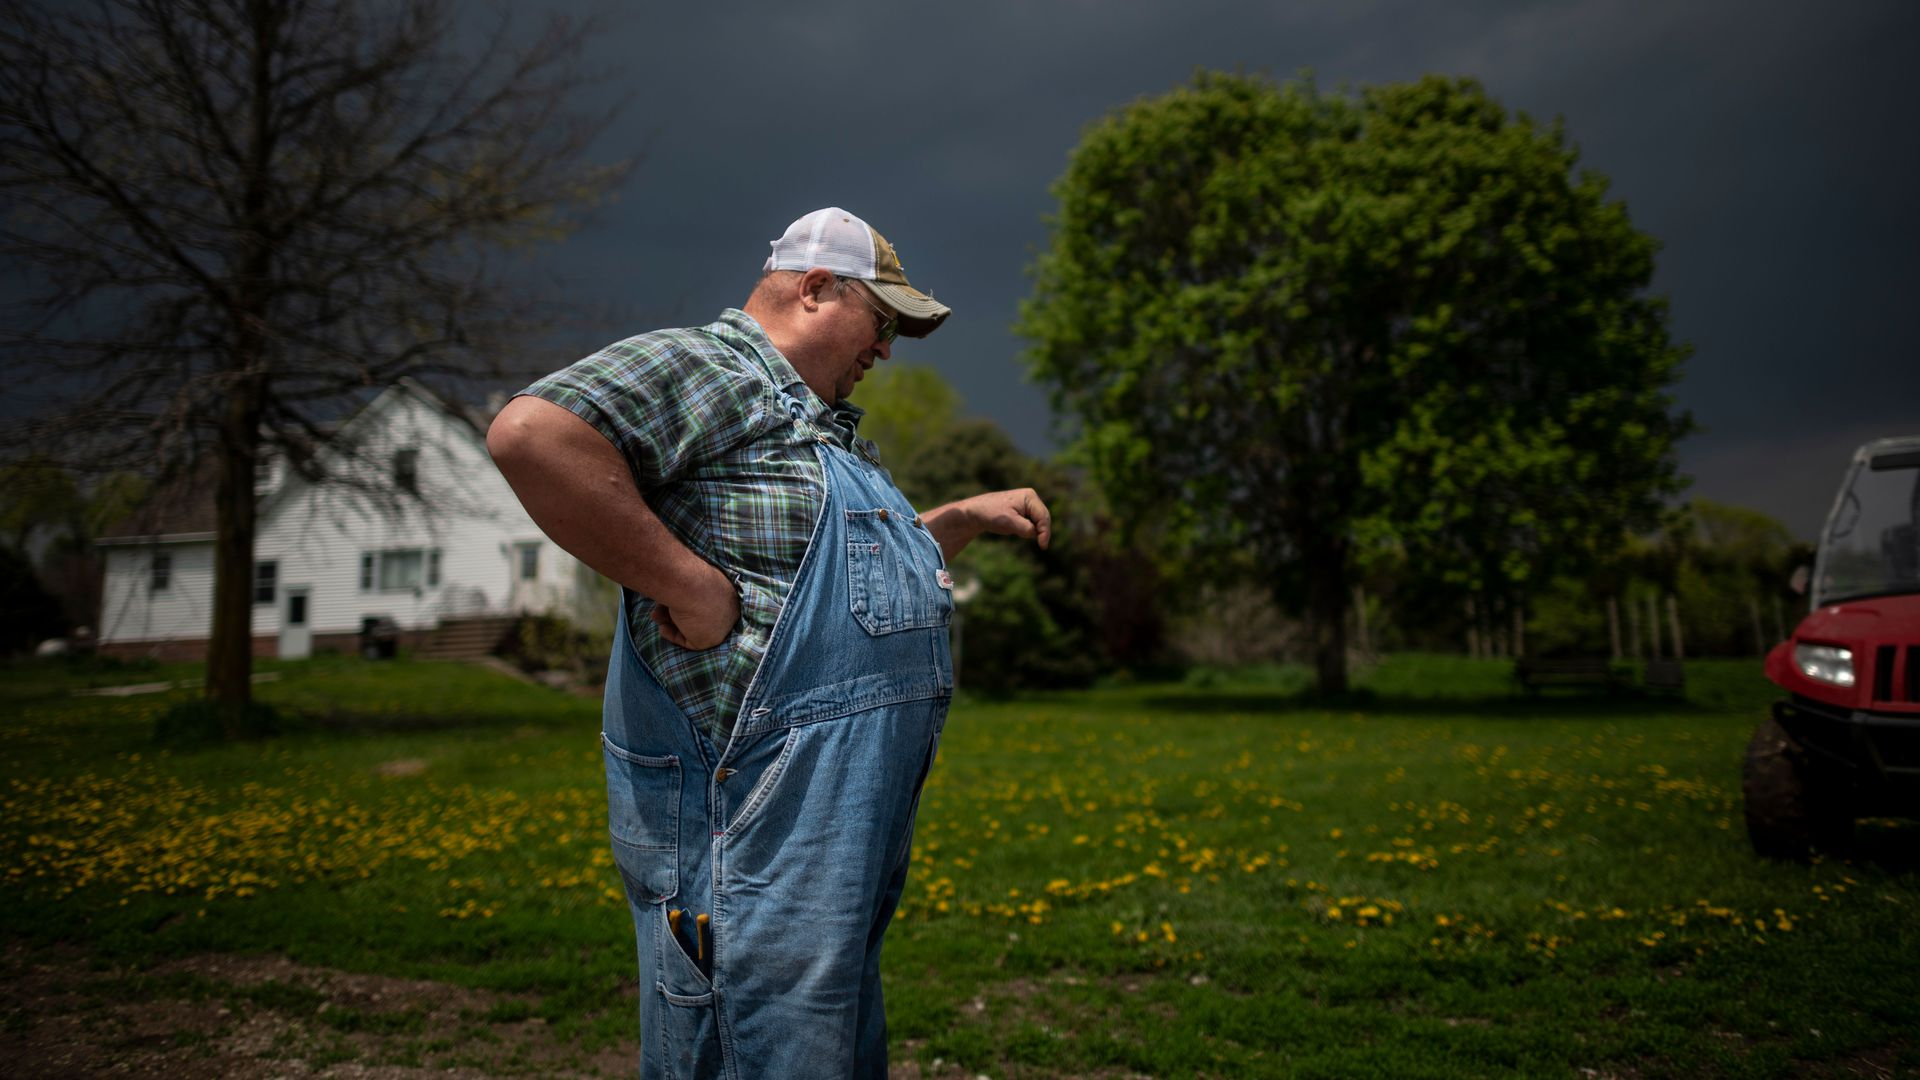 In this image, a farmer in overalls stands in a field with a white house in the background.